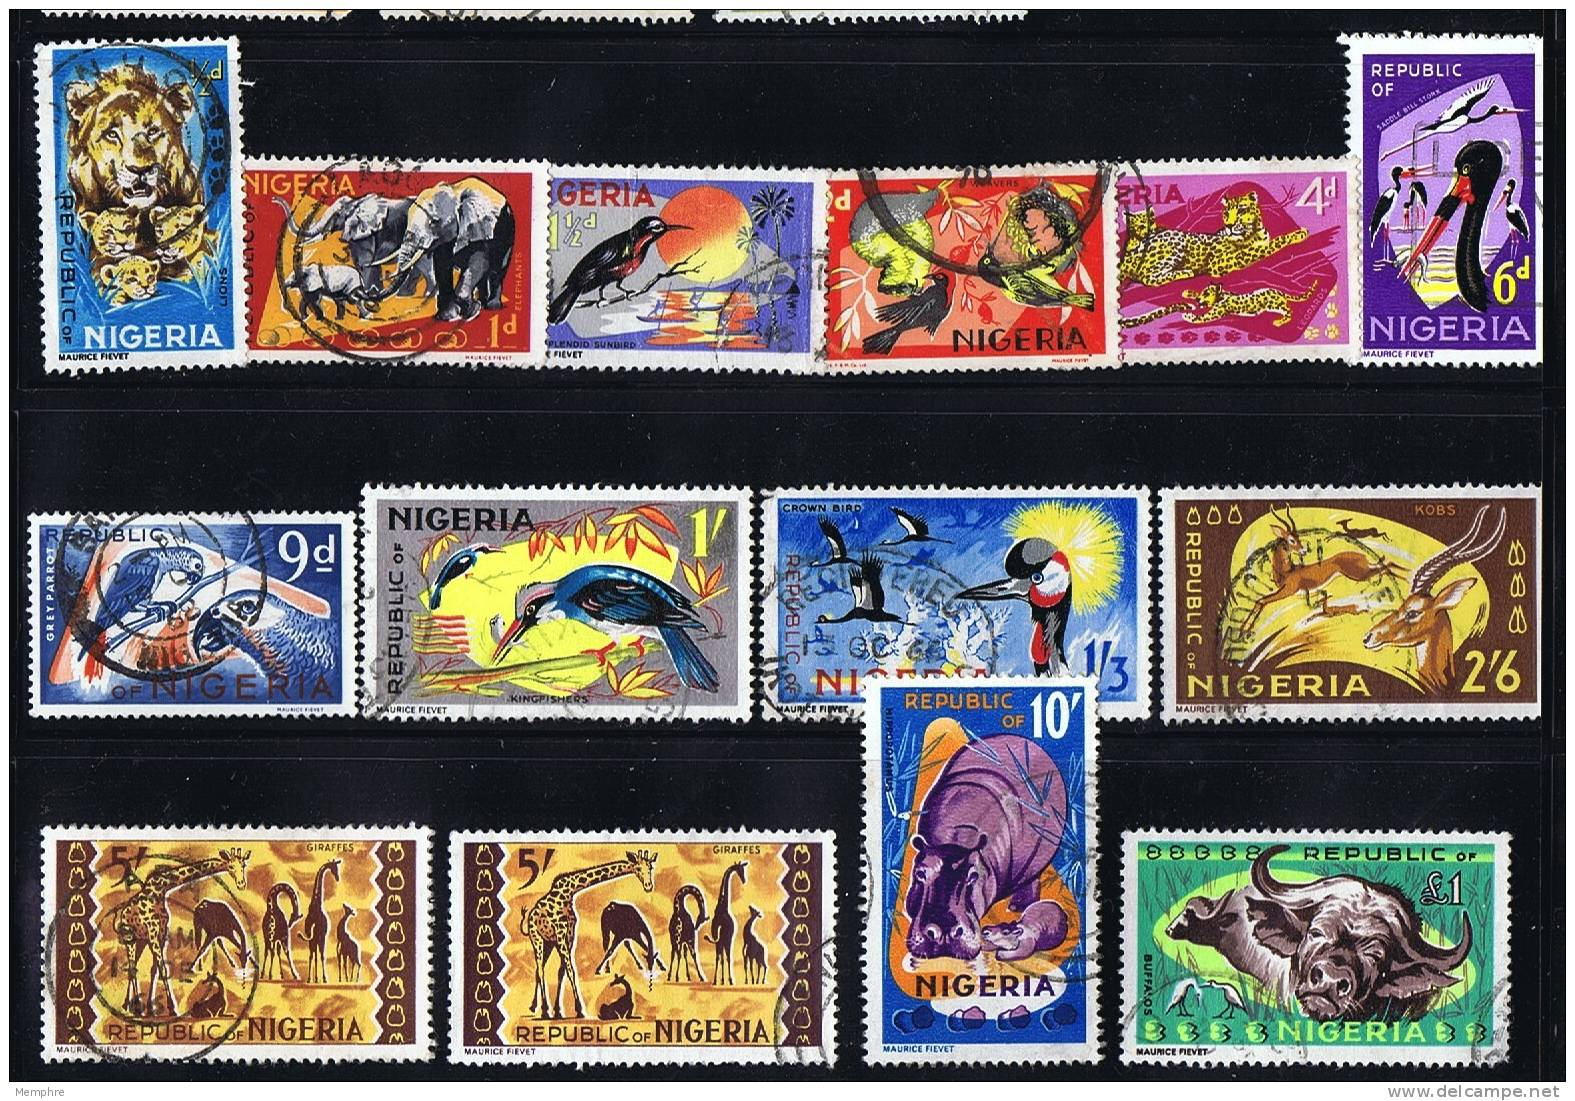 NIGERIA 1963  Animals Definitives  (Only Missing 3 D. Value)  SG 173-185  Used - Nigeria (1961-...)